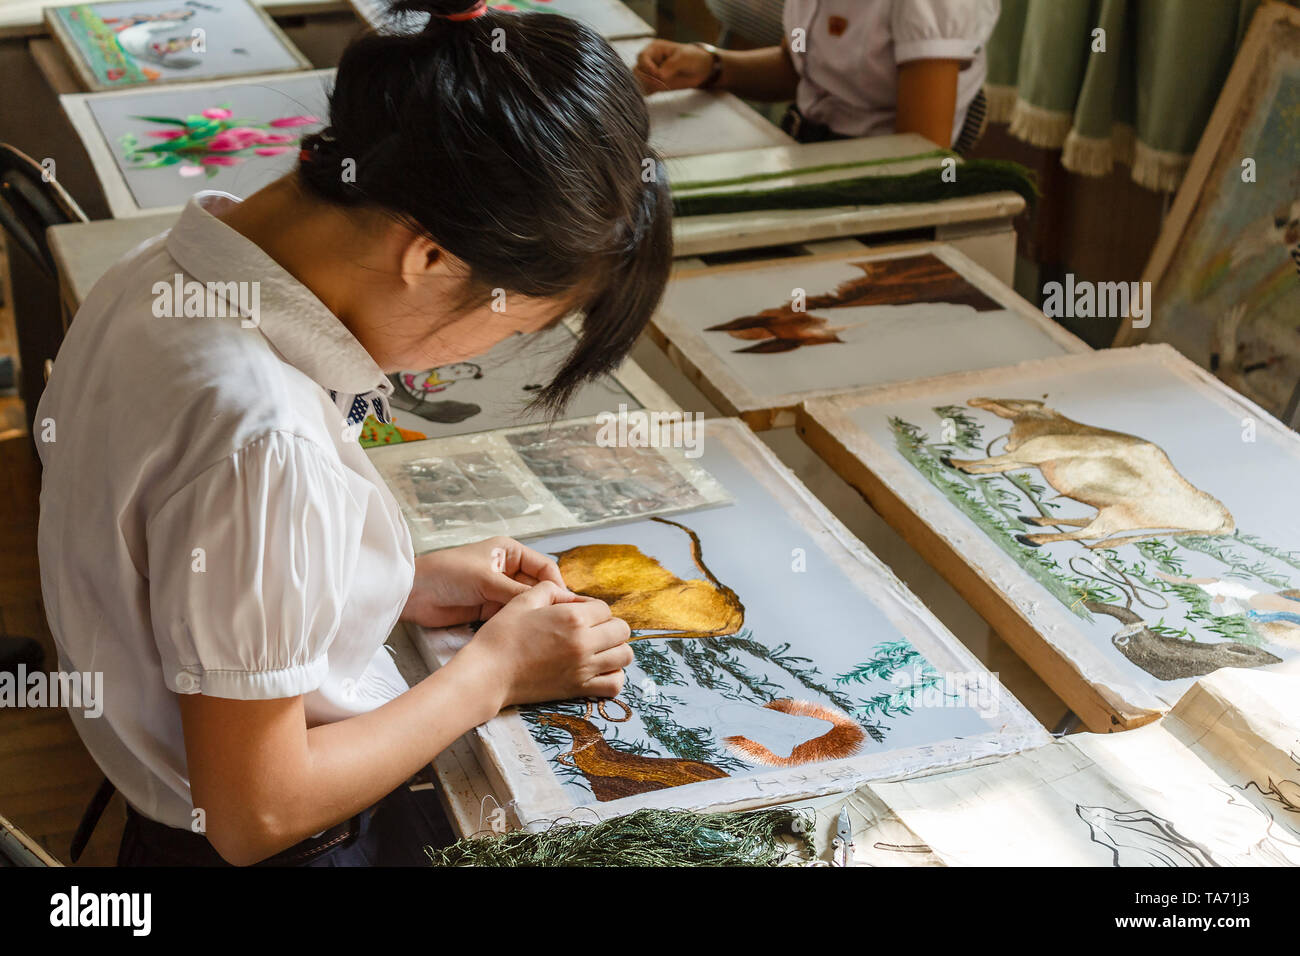 Pyongyang, North Korea - July 29, 2014: Korean girl embroiders a picture in the Pyongyang Palace of schoolchildren. Extracurricular educational instit - Stock Image